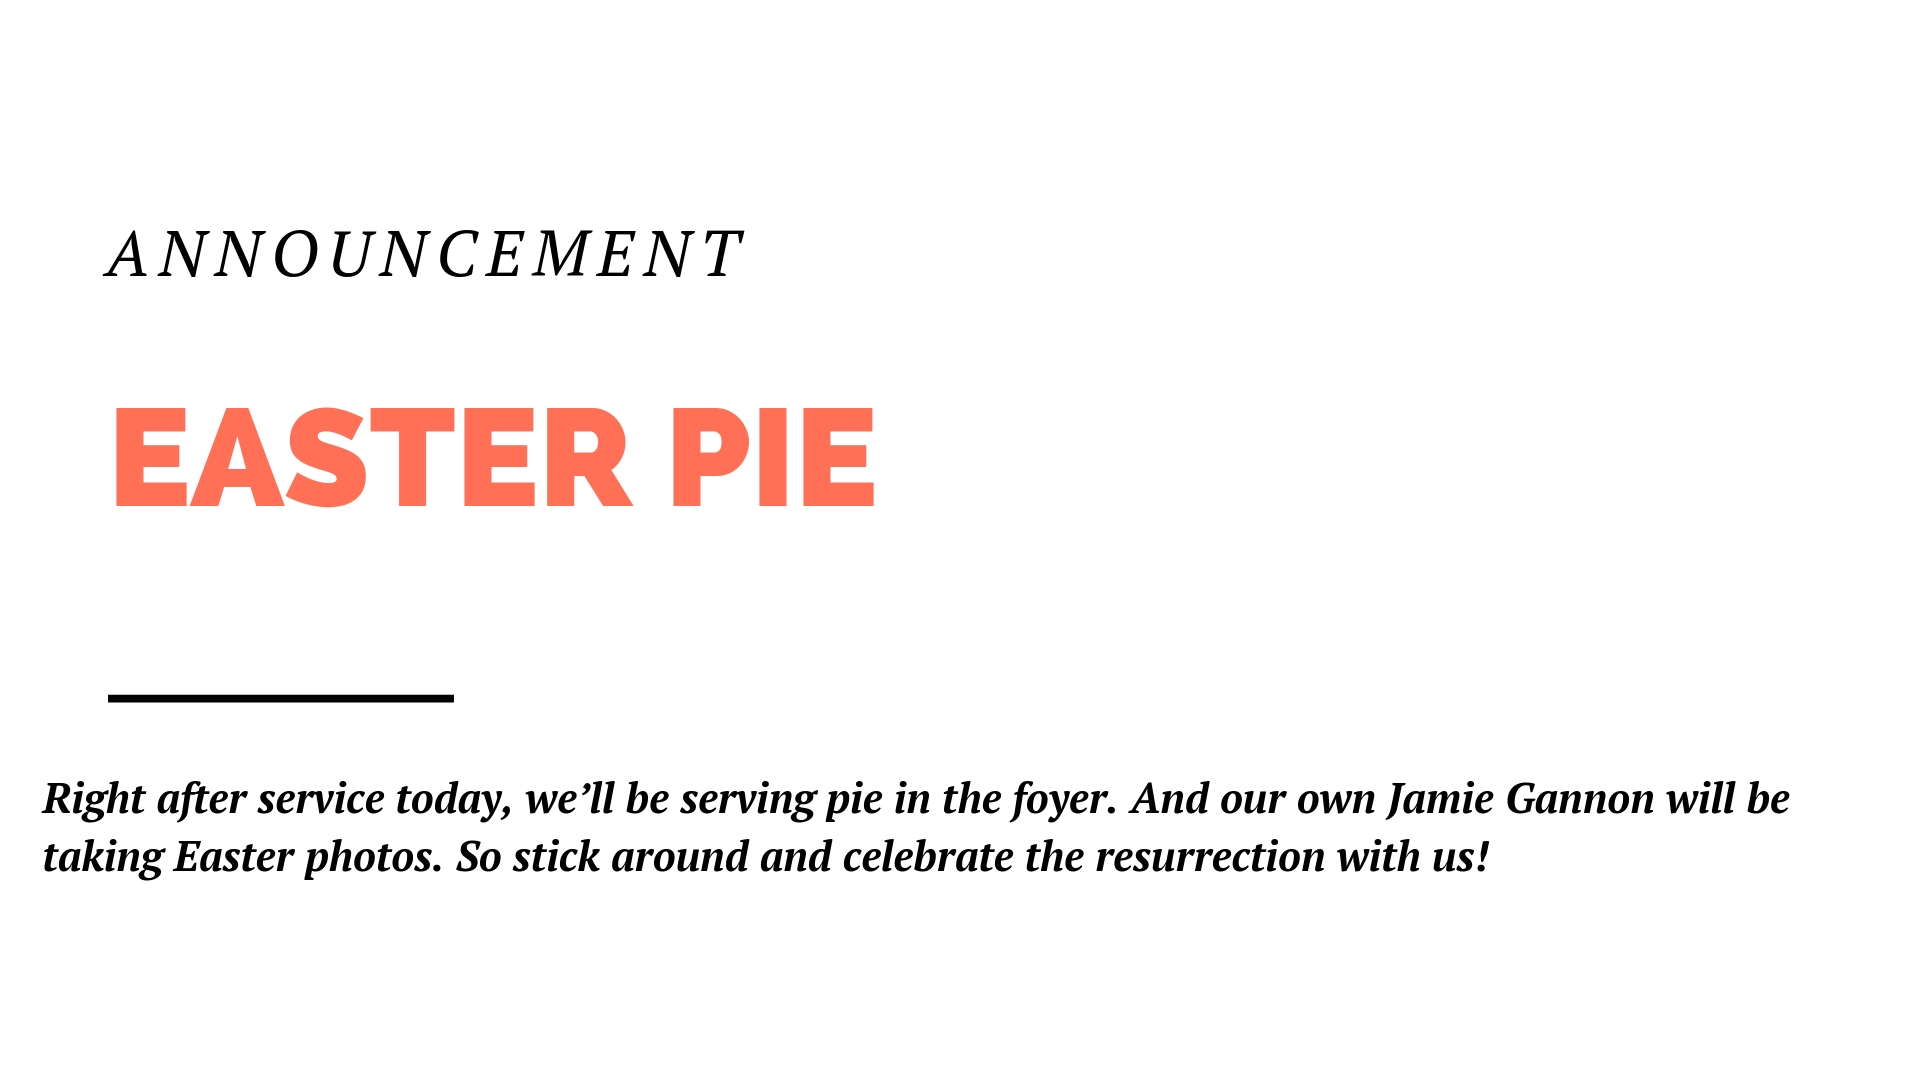 Right after service this Sunday, we'll be serving pie in the foyer. And our own Jamie Gannon will be taking Easter photos. So stick around and celebrate the resurrection with us!